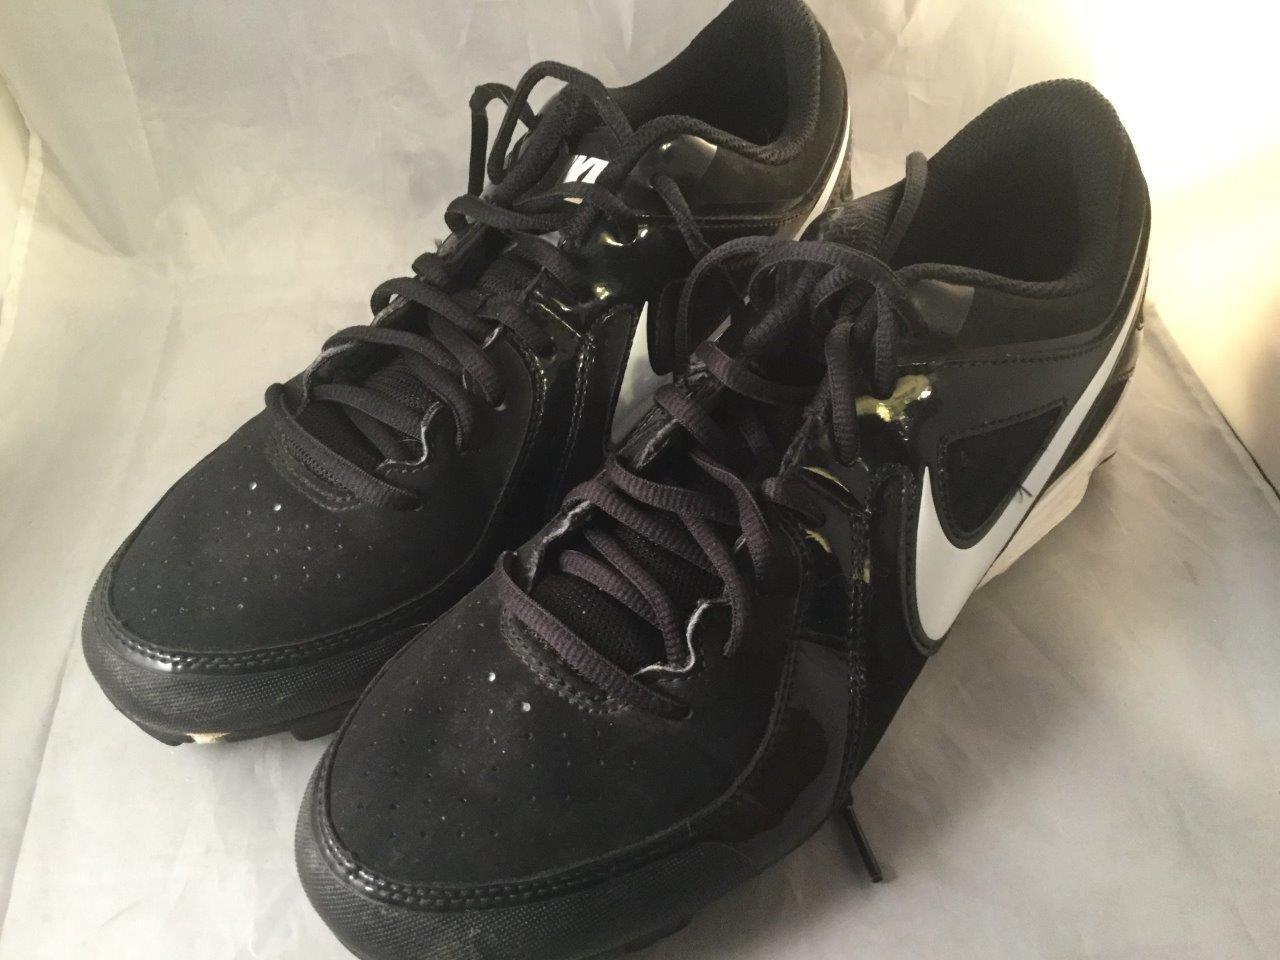 Nike MVP Keystone Low LE Unisex Price reduction New shoes for men and women, limited time discount